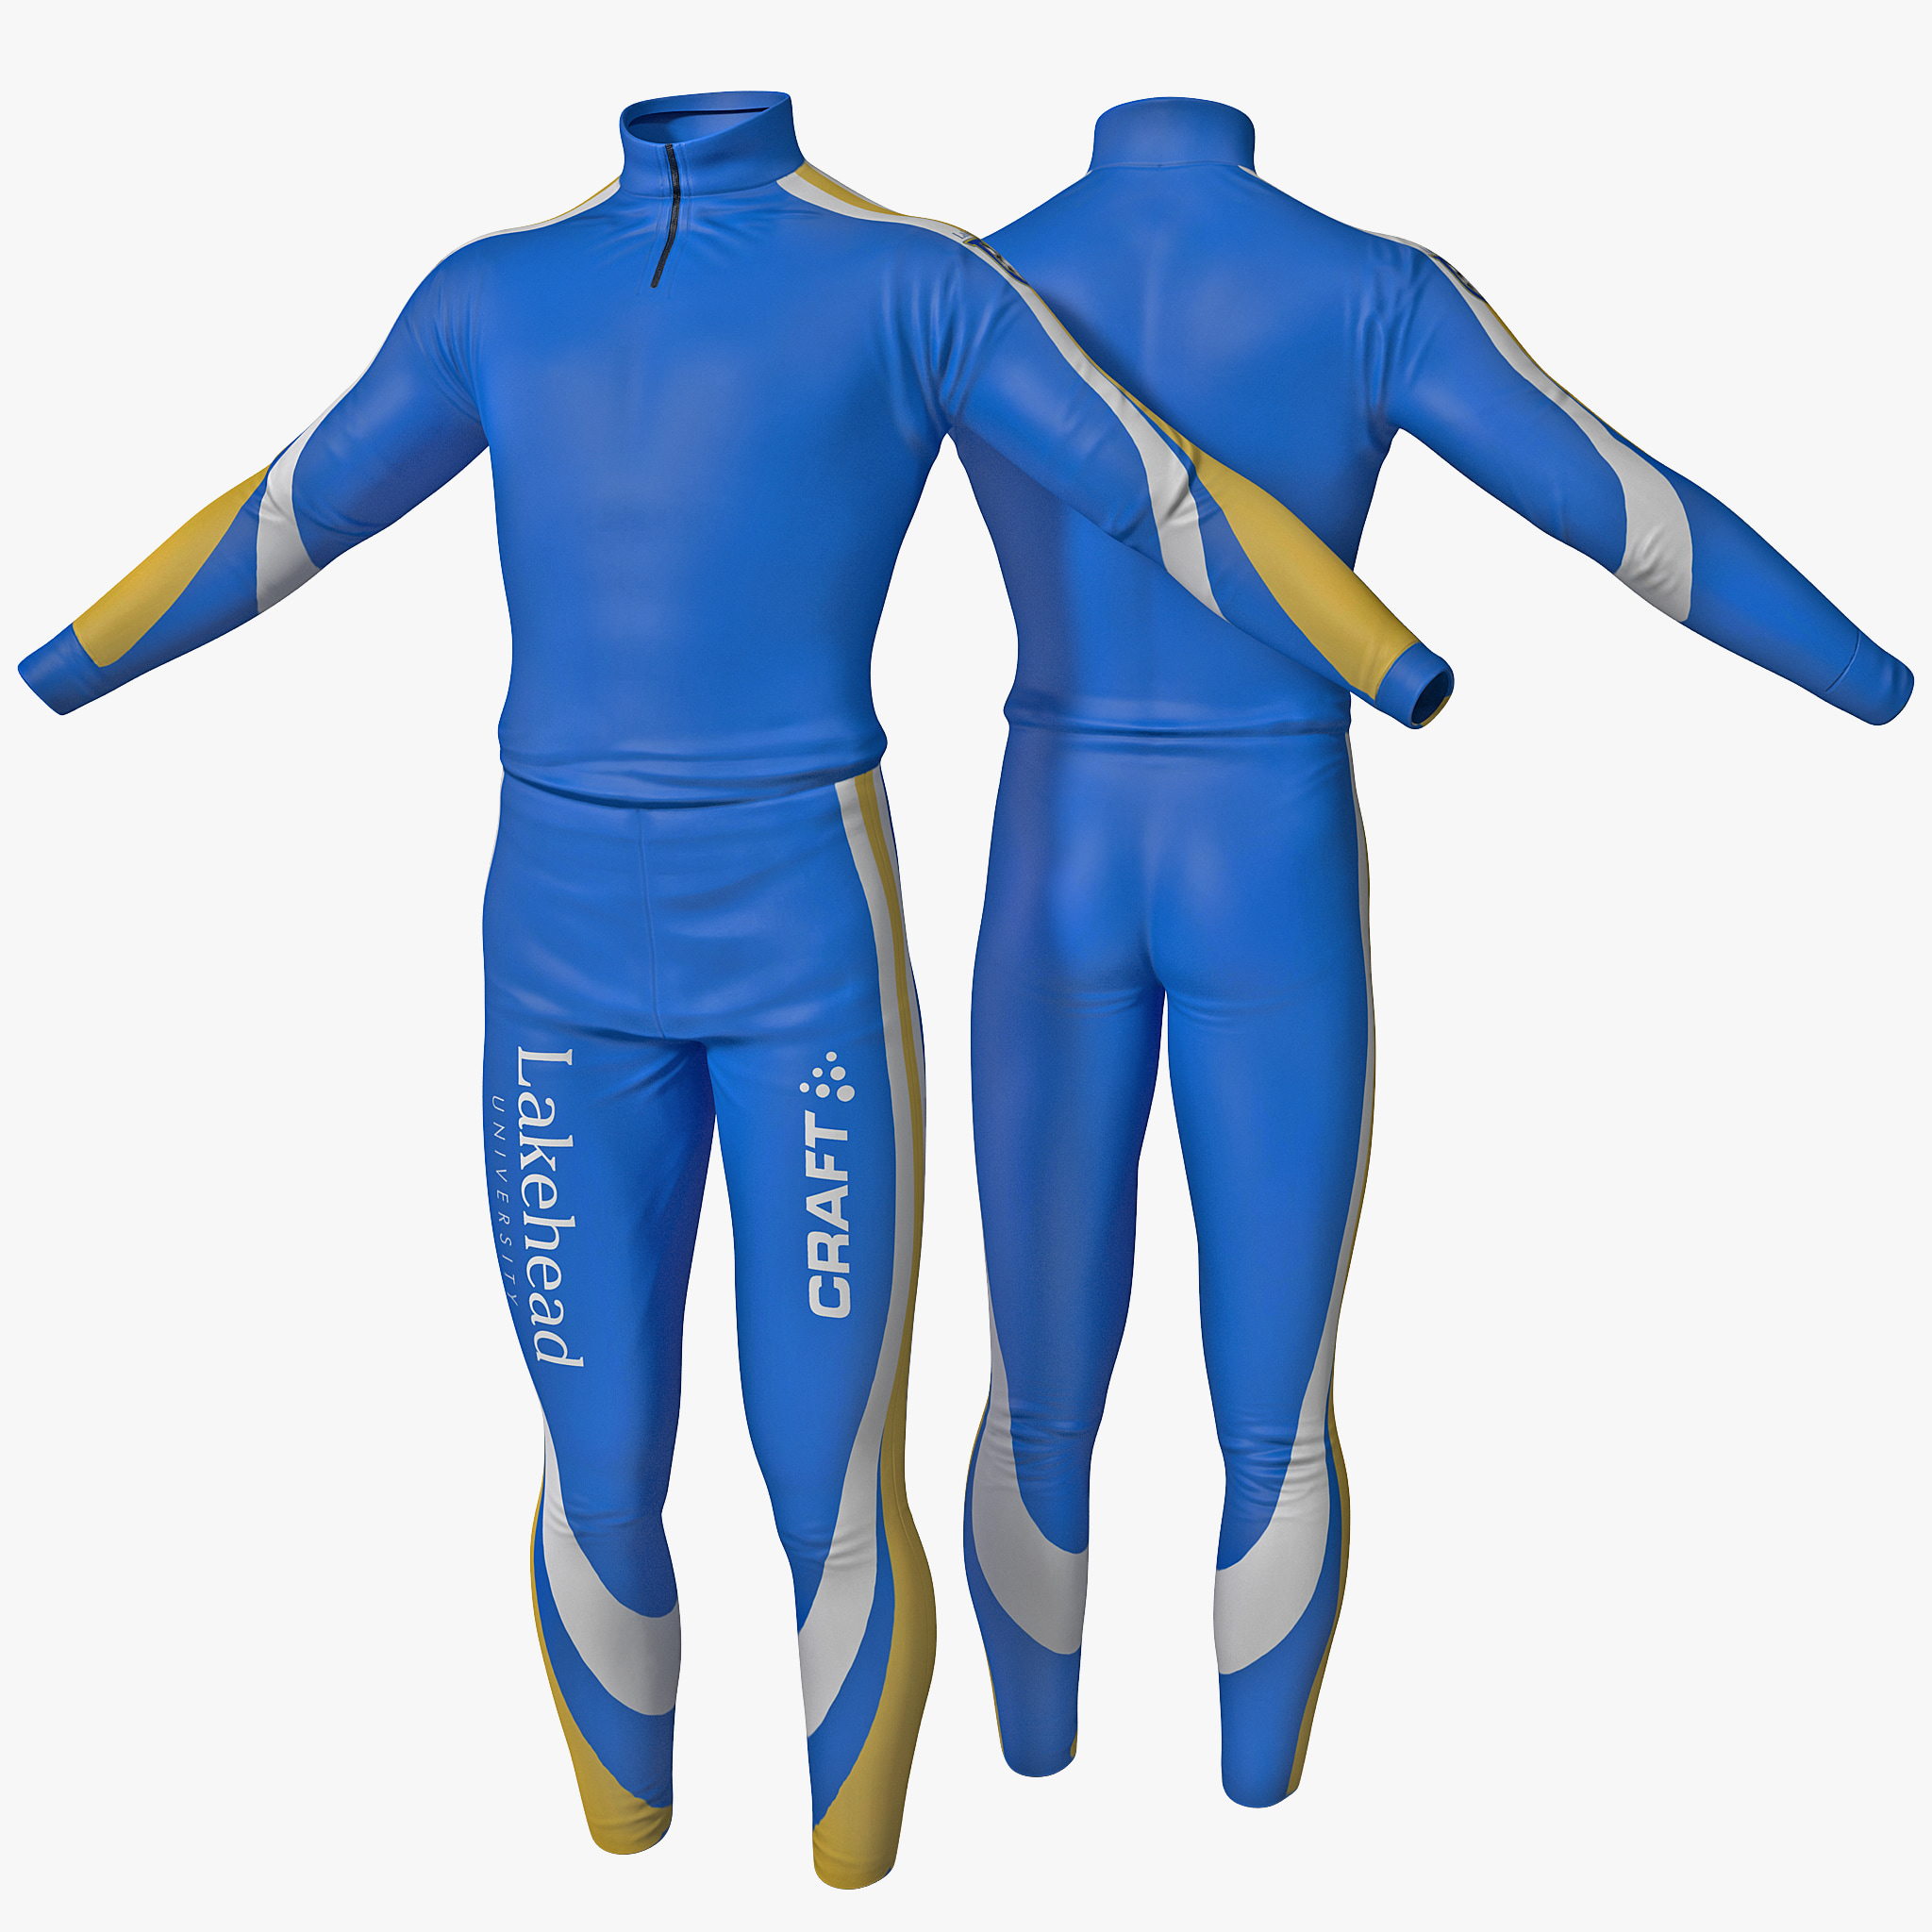 3d skier clothes 3 model